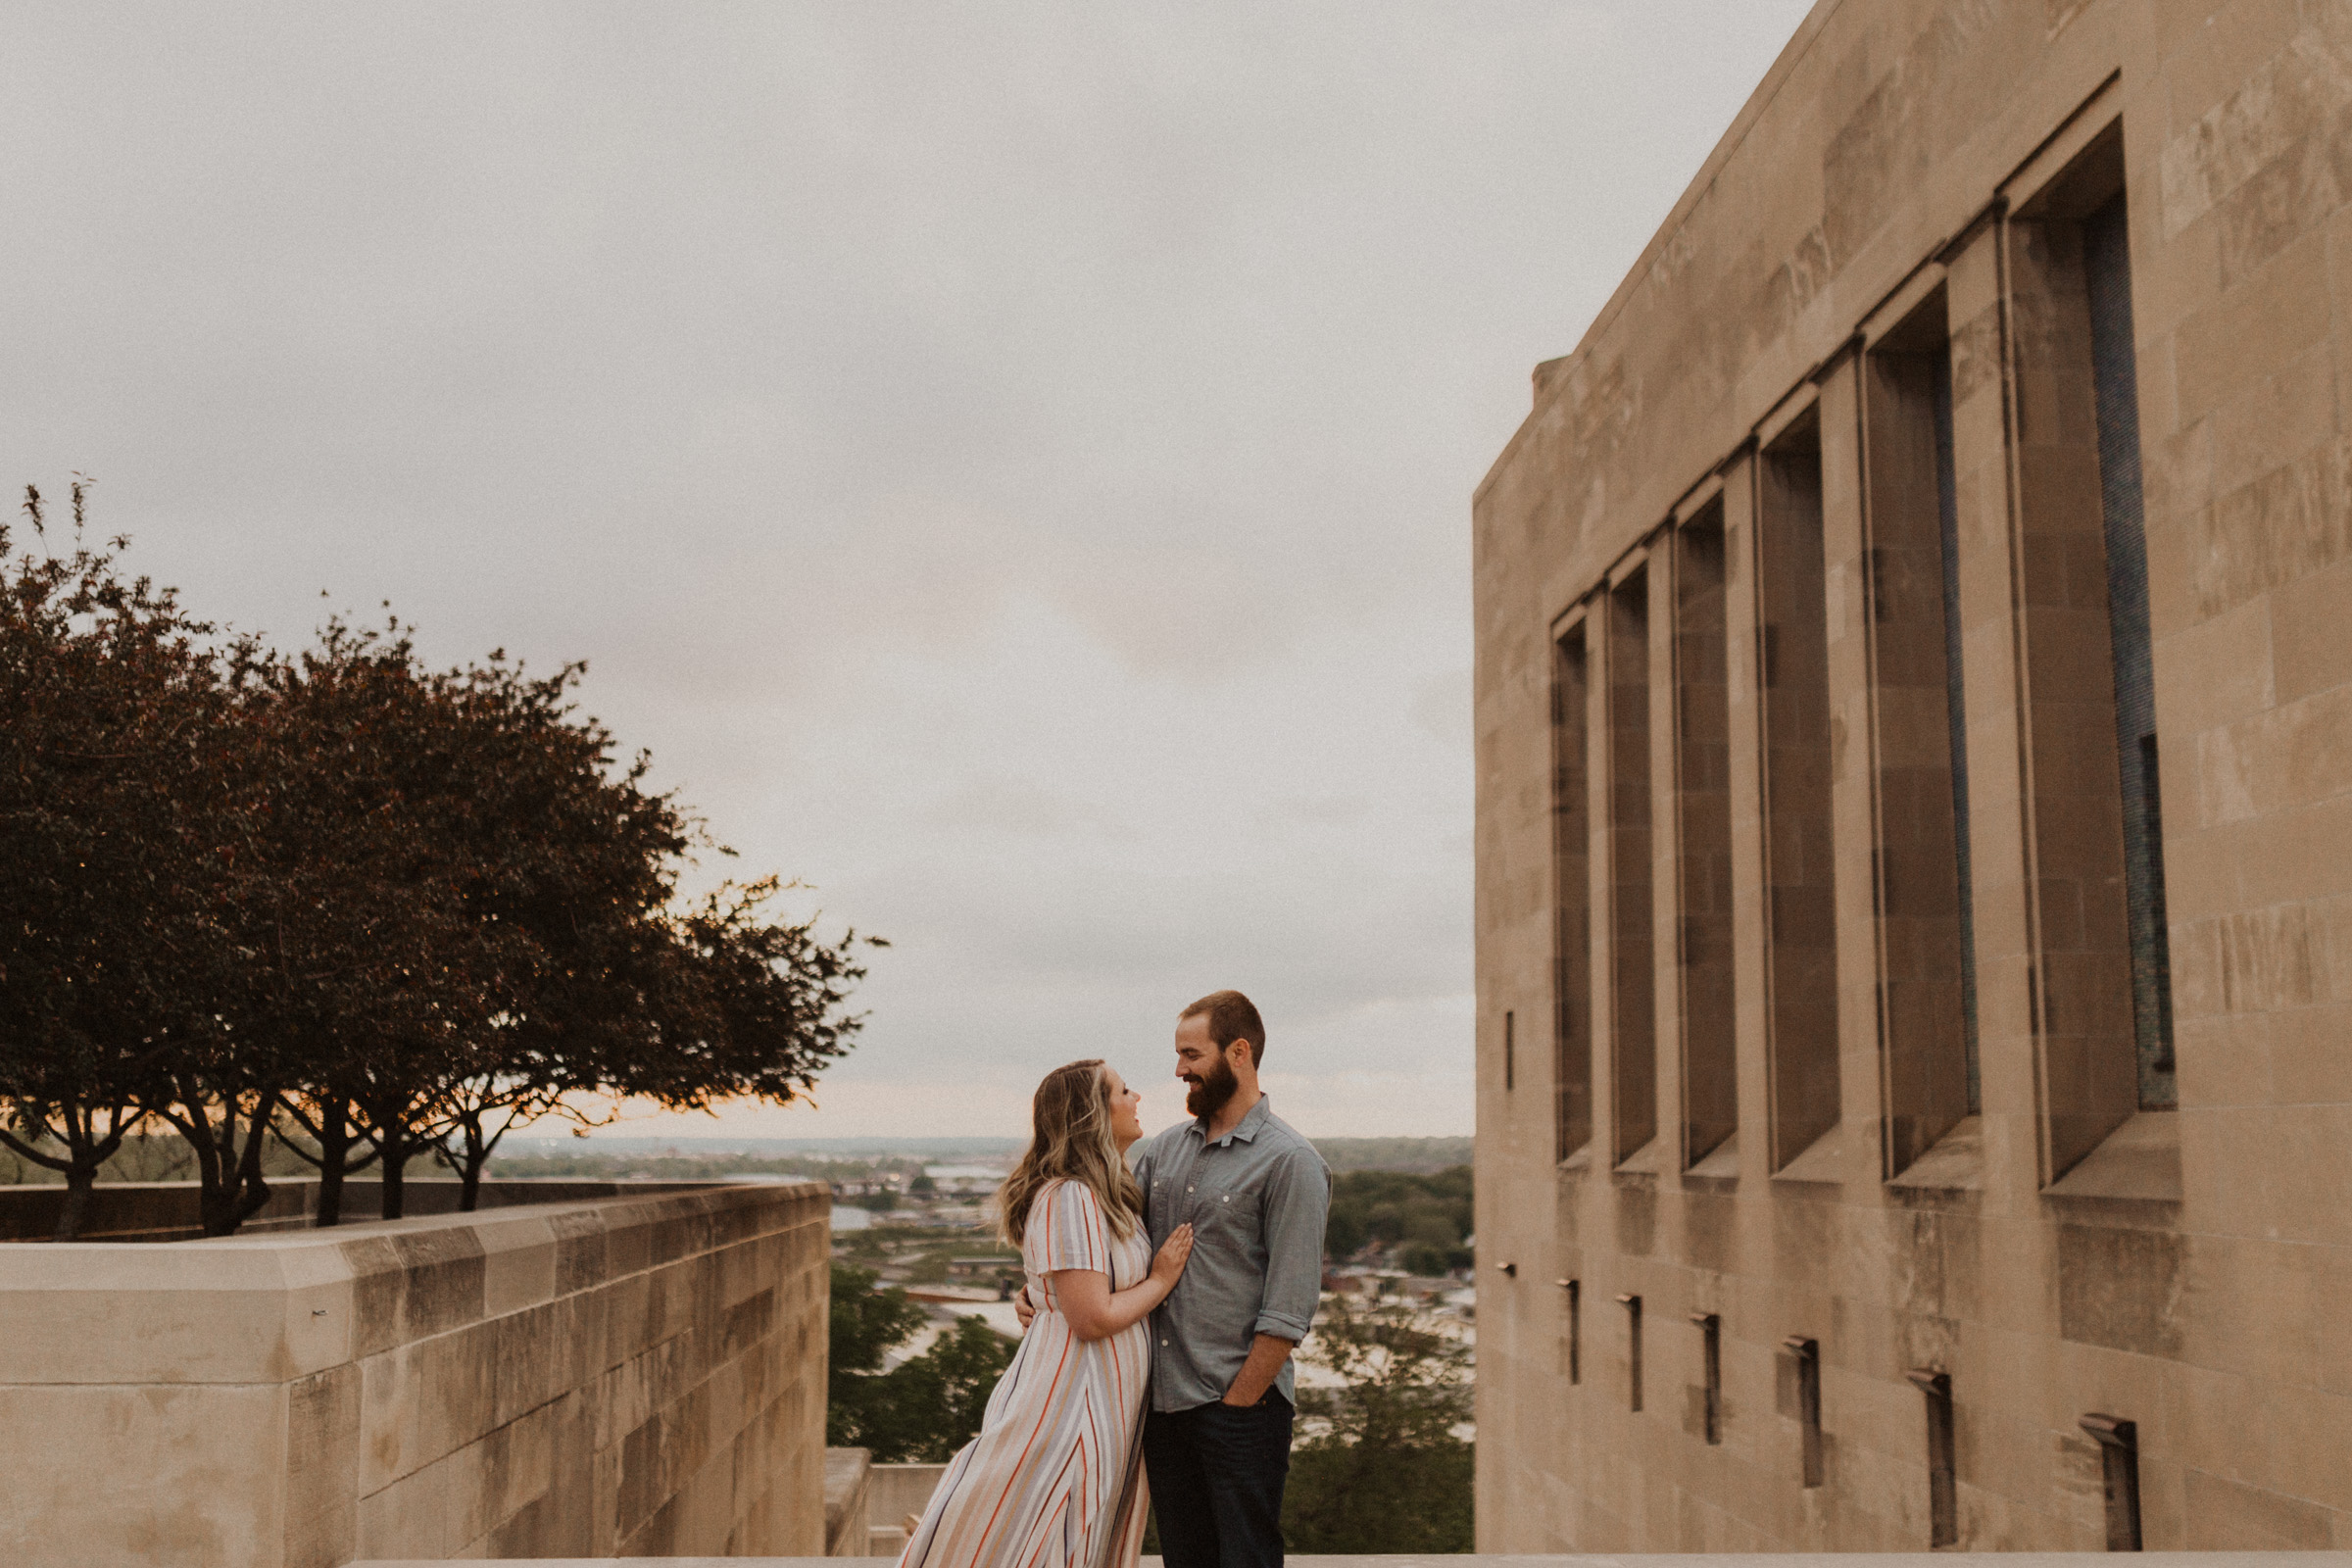 alyssa barletter photography kansas city liberty memorial loose park engagement session photographer-19.jpg